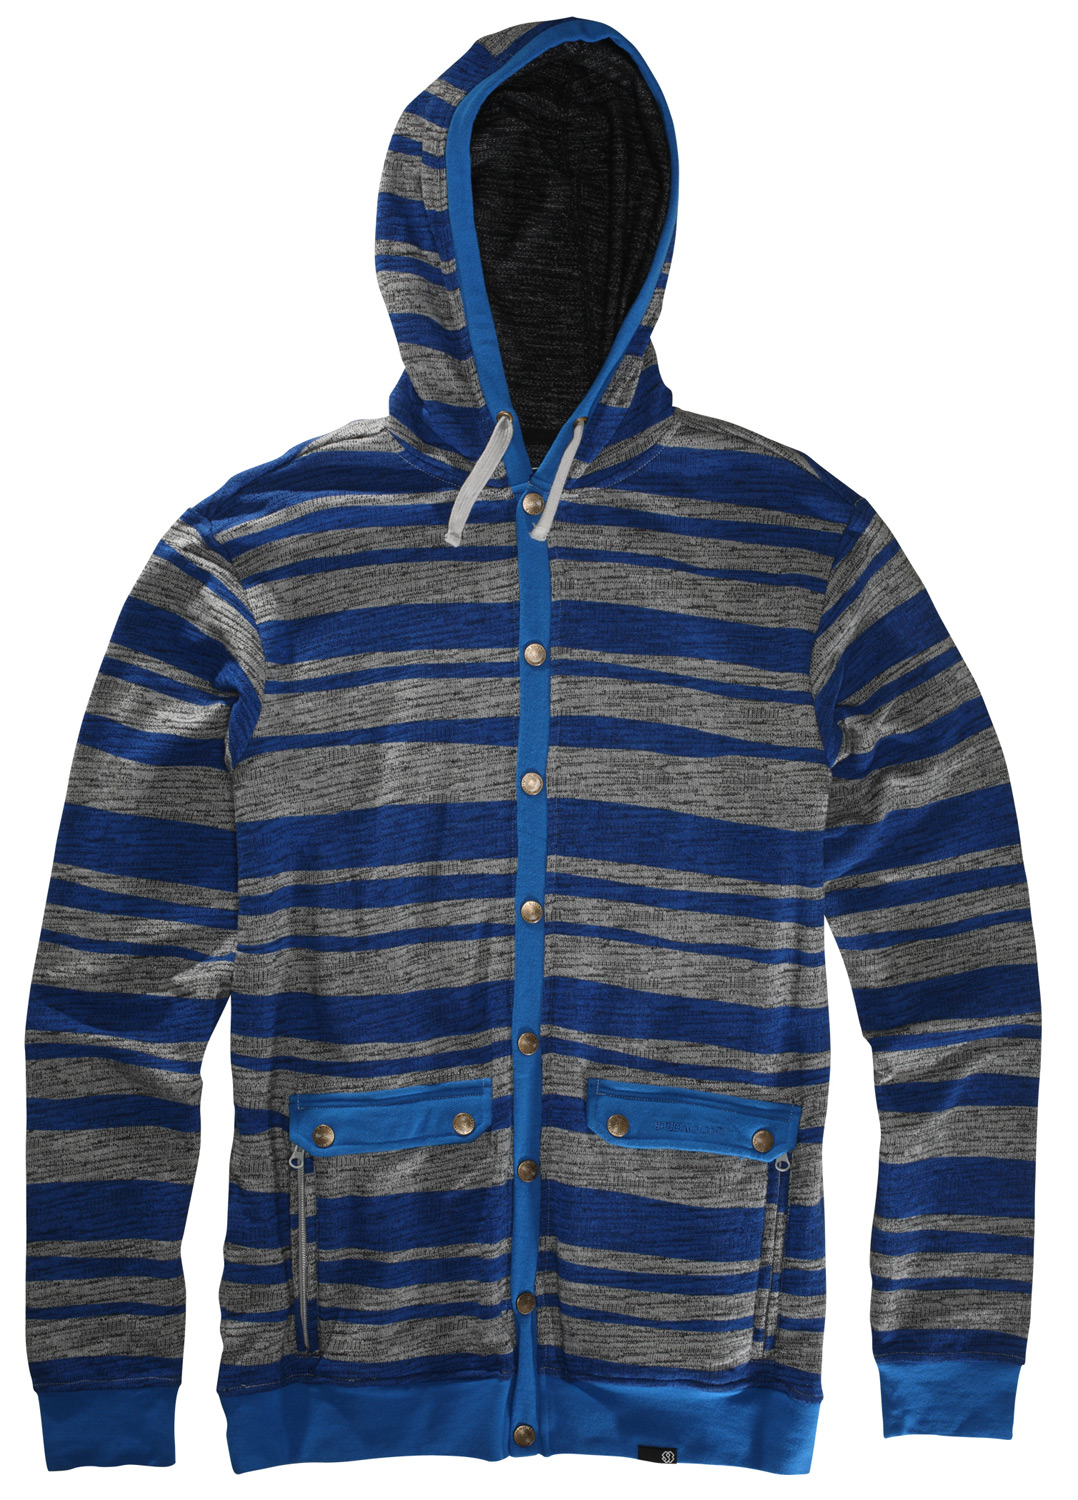 Cardigan style slub French terry hoody Key Features of the Special Blend Rogers Fullzip Hoodie: Revolver Slim fit 60% cotton 40% Polyester, 300 gms. 100% cotton jersey hood lining. Hidden media pocket - $36.95